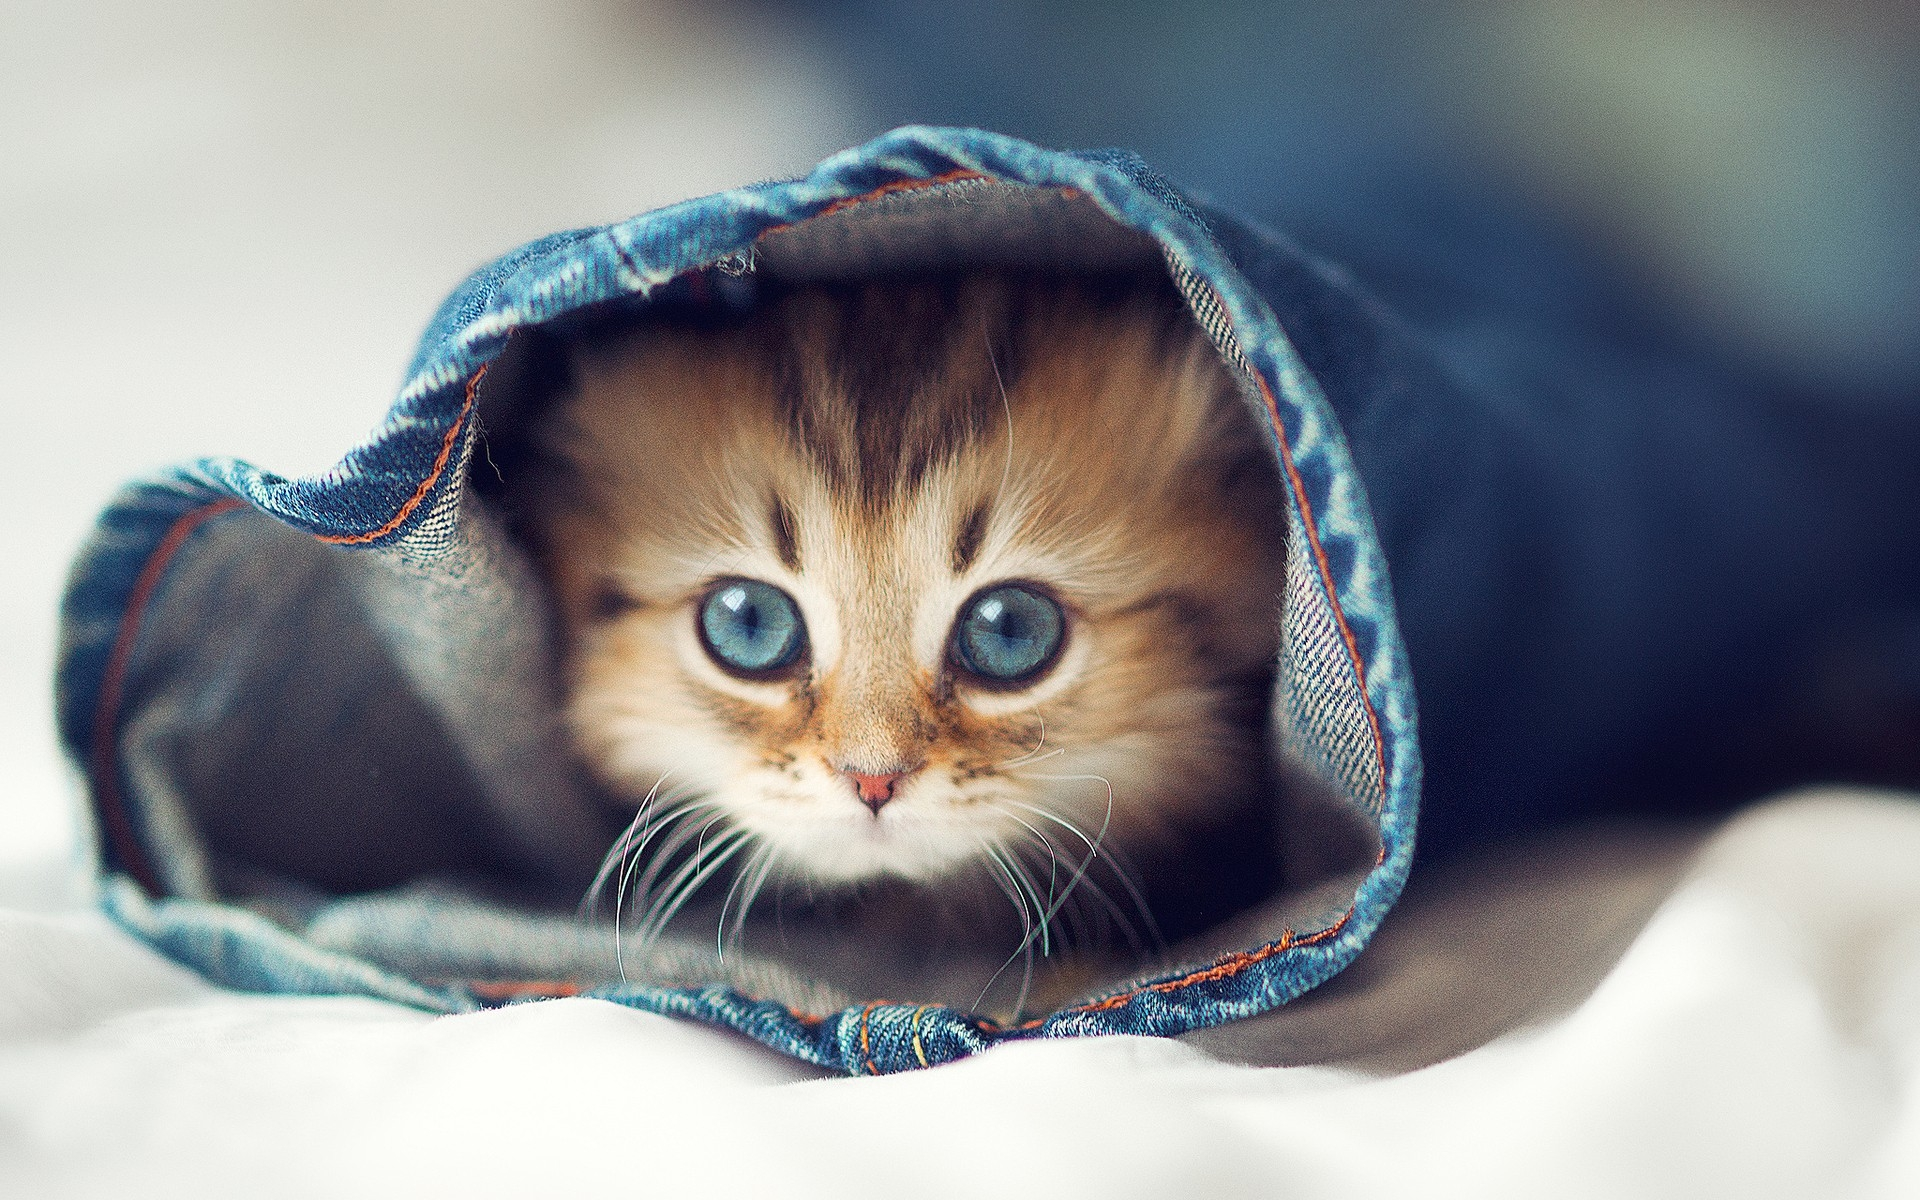 Jeans_cats_animals_kittens_pets_1920x1200.jpg